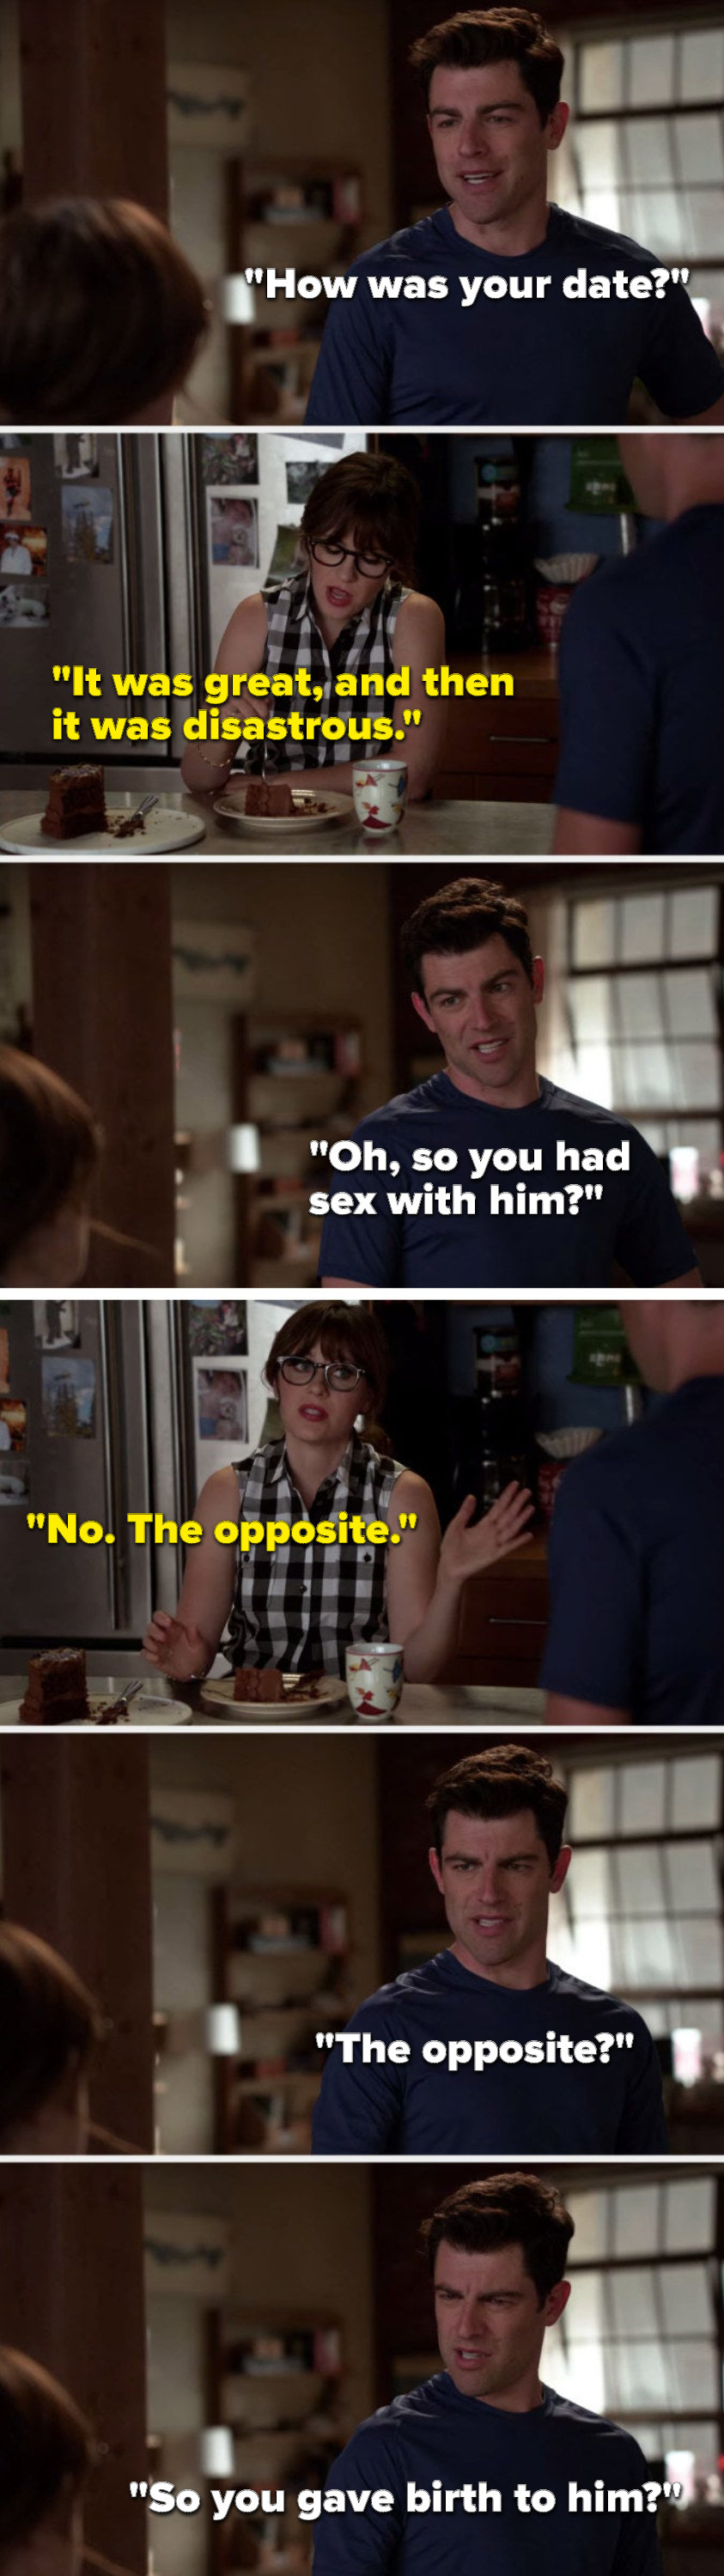 """Schmidt says, """"How was your date,"""" Jess says, """"It was great, and then it was disastrous,"""" Schmidt says, """"Oh, so you had sex with him,"""" Jess says, """"No, the opposite,"""" and Schmidt asks, """"The opposite, so you gave birth to him"""""""